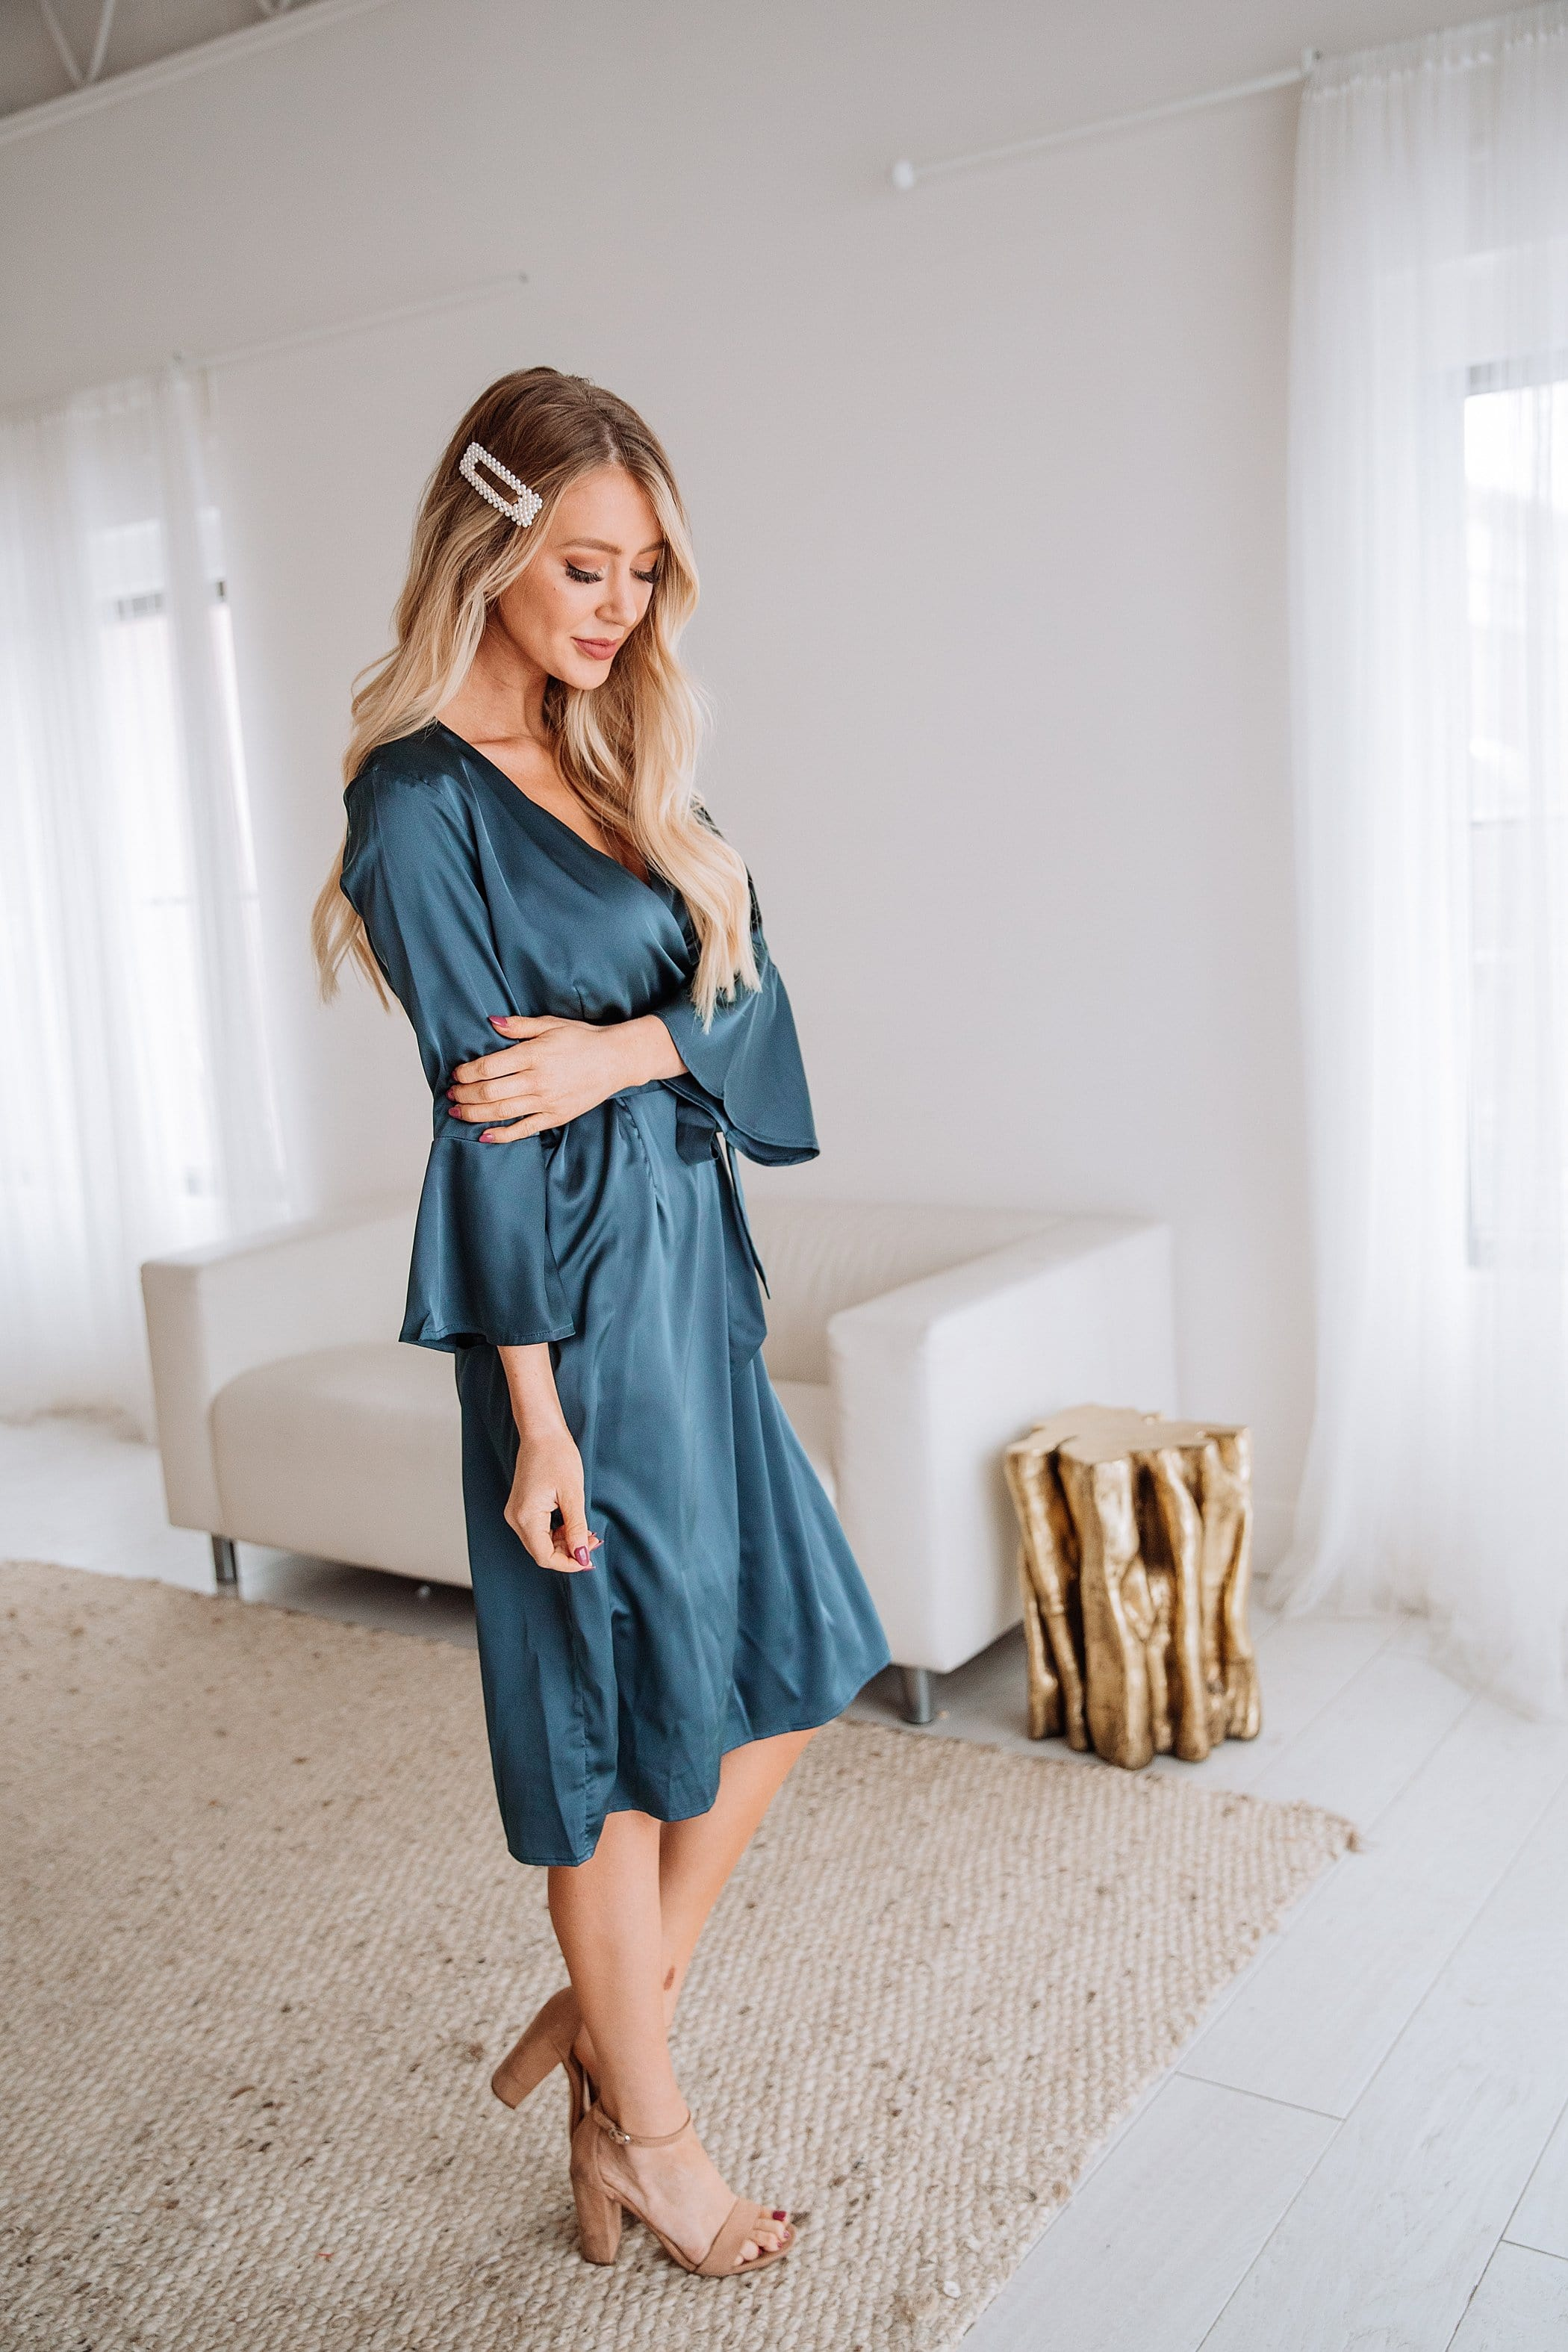 The Reign Satin Dress in Stone Blue